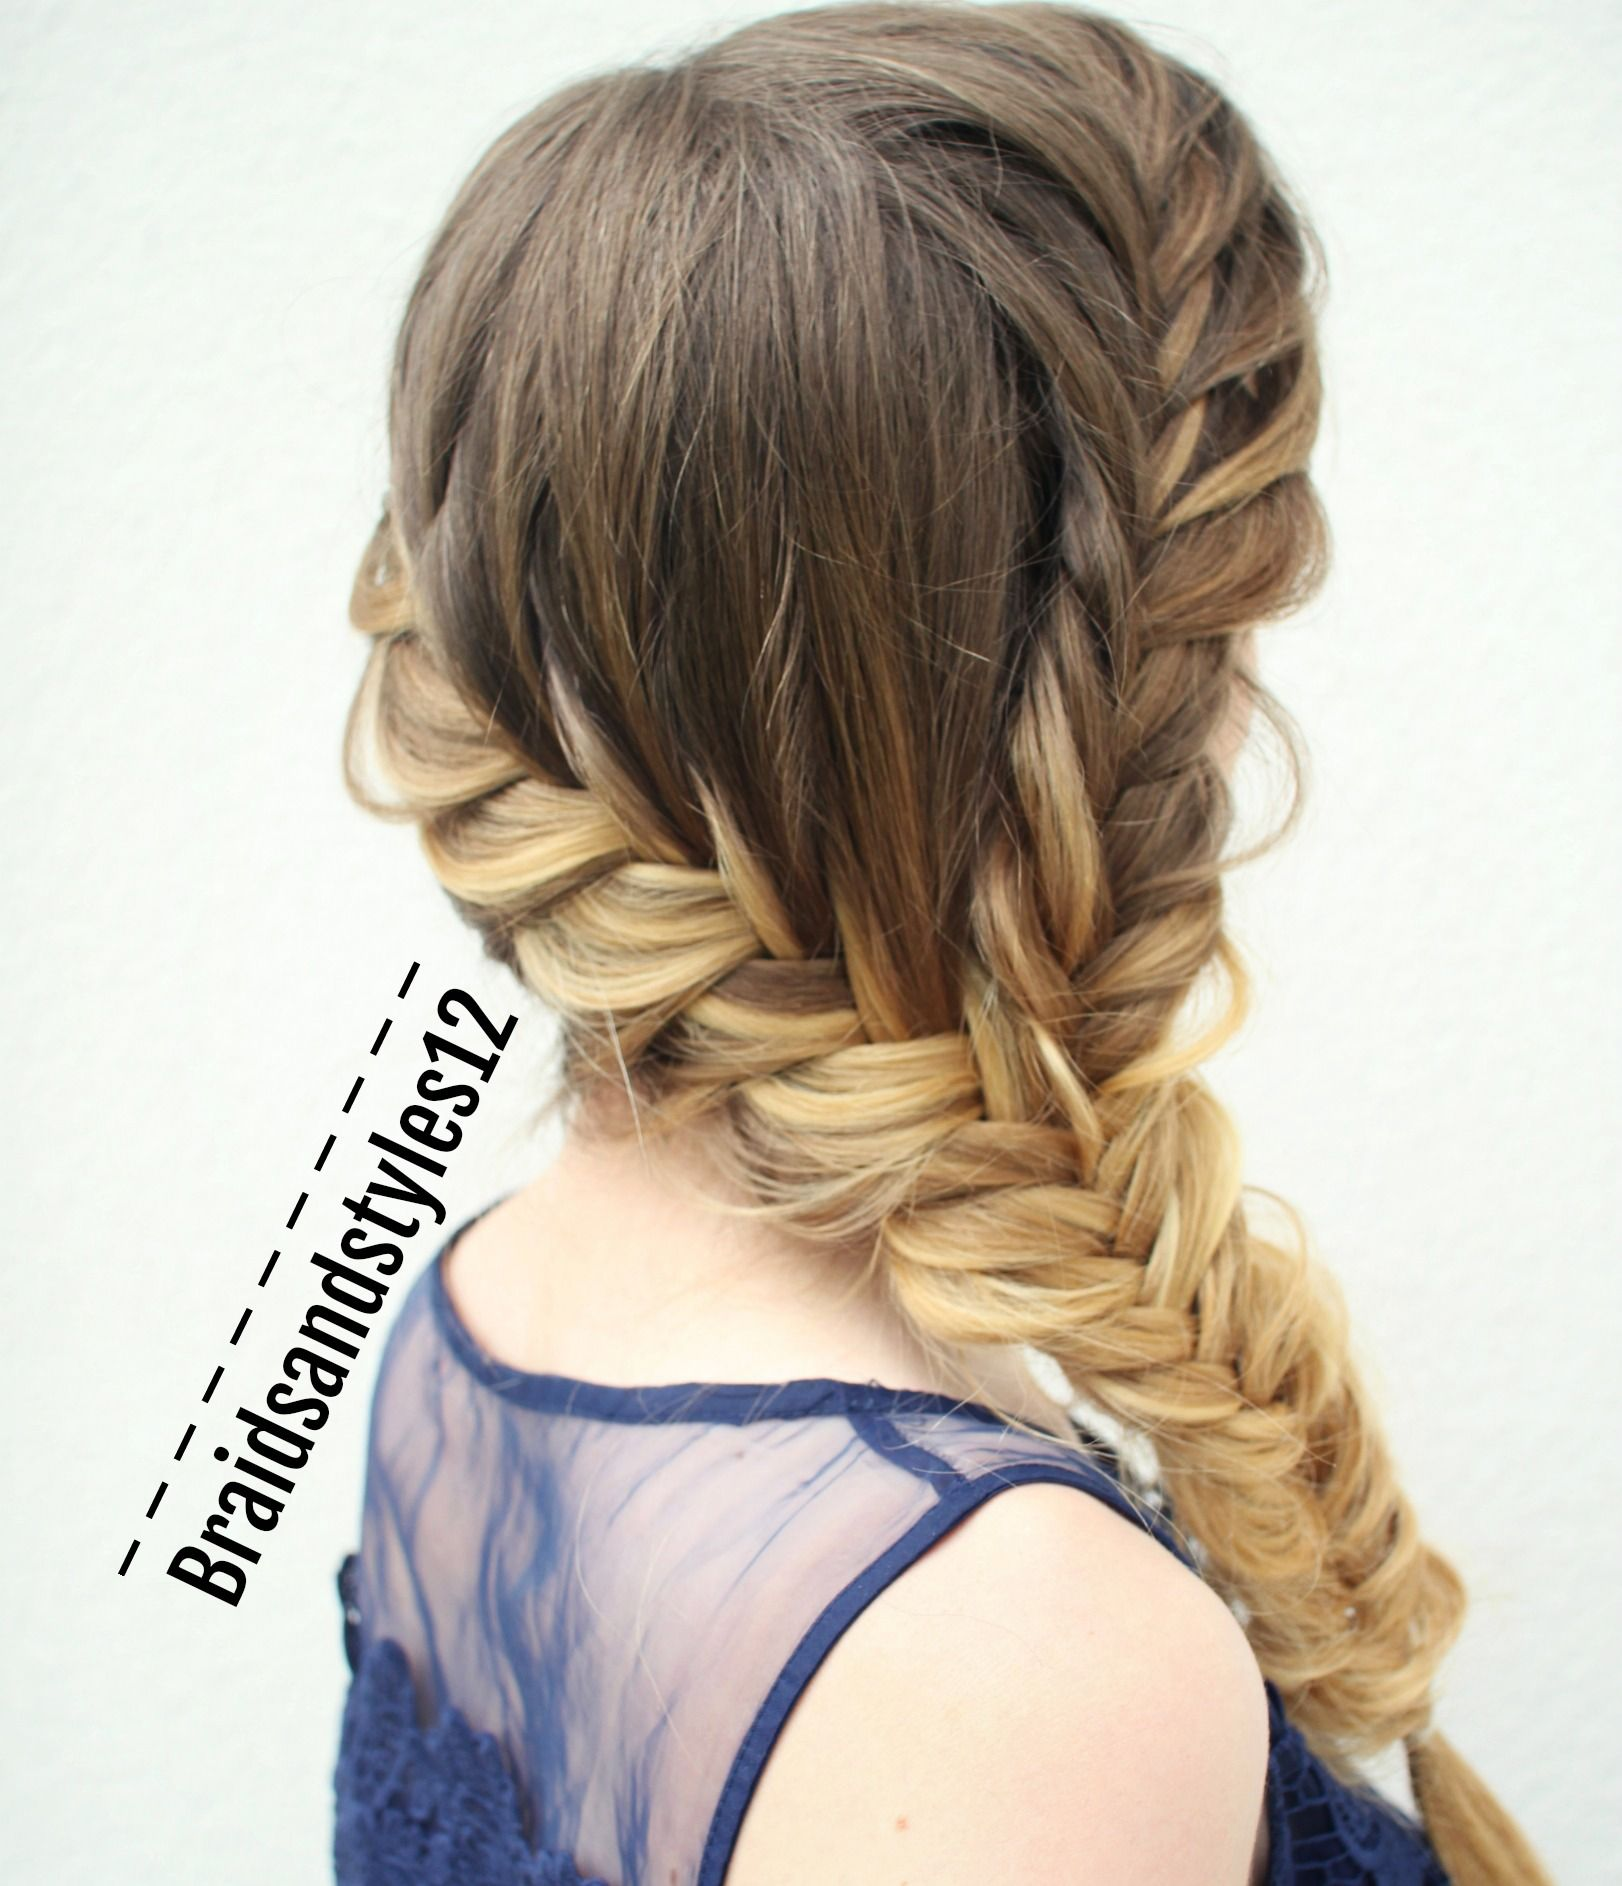 Diy French Fishtail Style By Braidsandstyles12 Fishtail Braids Hair Hairstyles Beauty Style Braids Hair Braid Diy Braided Hairstyles Medium Hair Styles